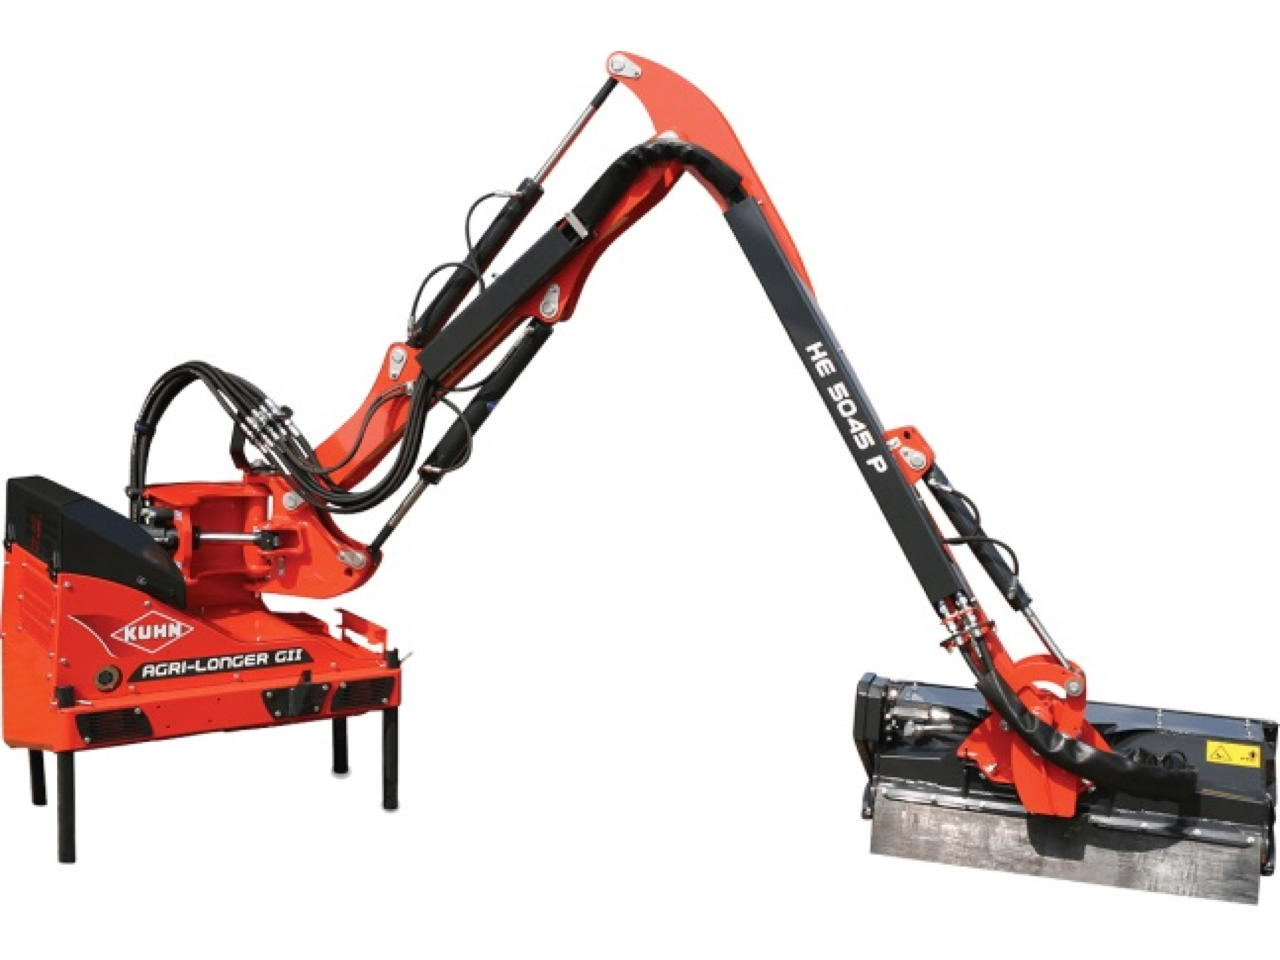 Kuhn Agri-Longer GII con perno di sicurezza